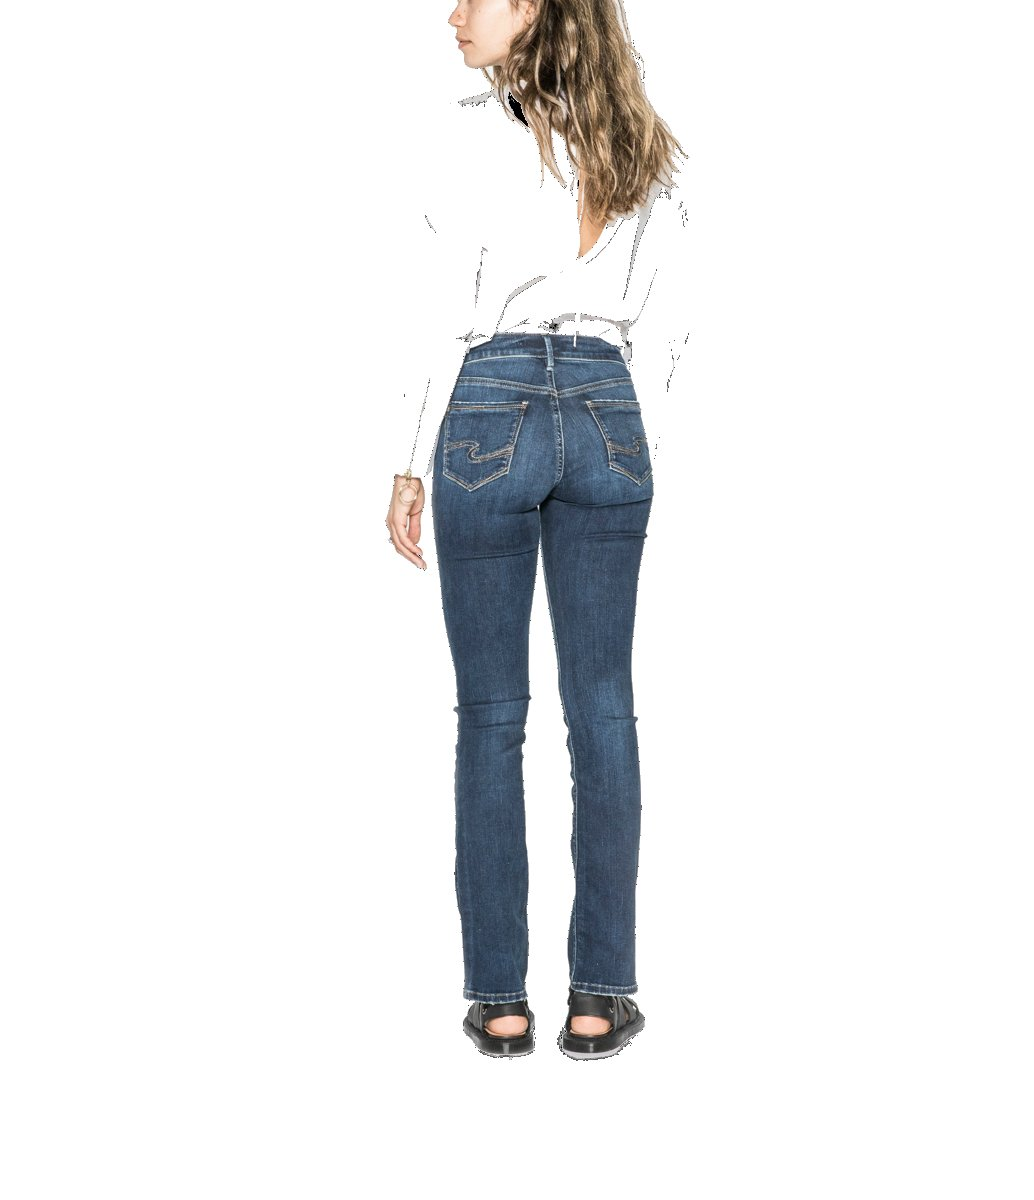 Silver Jeans Co. Women's Avery Curvy Fit High Rise Slim Bootcut, Dark Comfort Stretch, 30x33